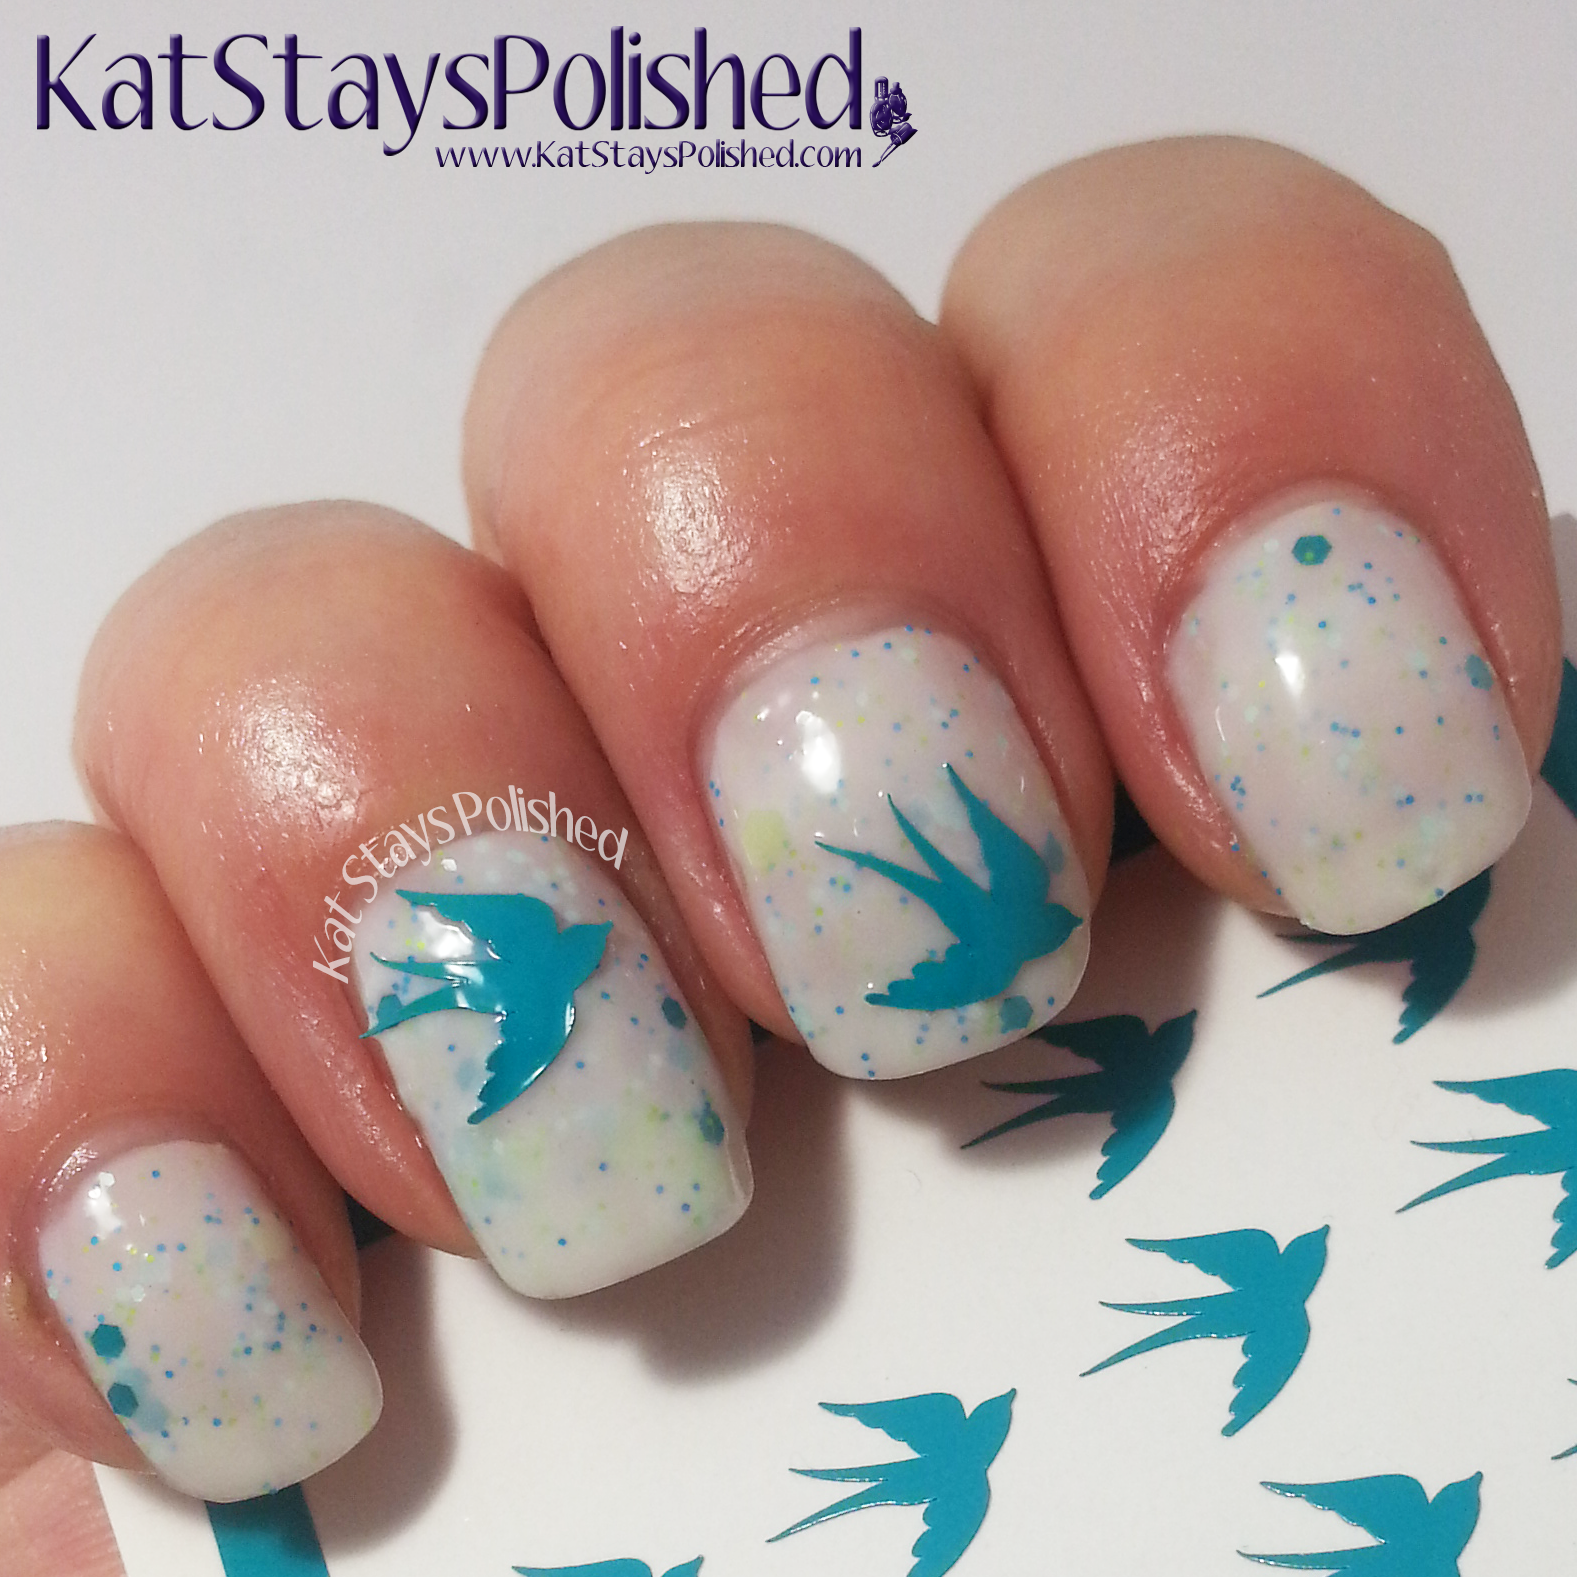 You Polish Nail Decals | Creations by Lynda Mint Orchid | Kat Stays Polished